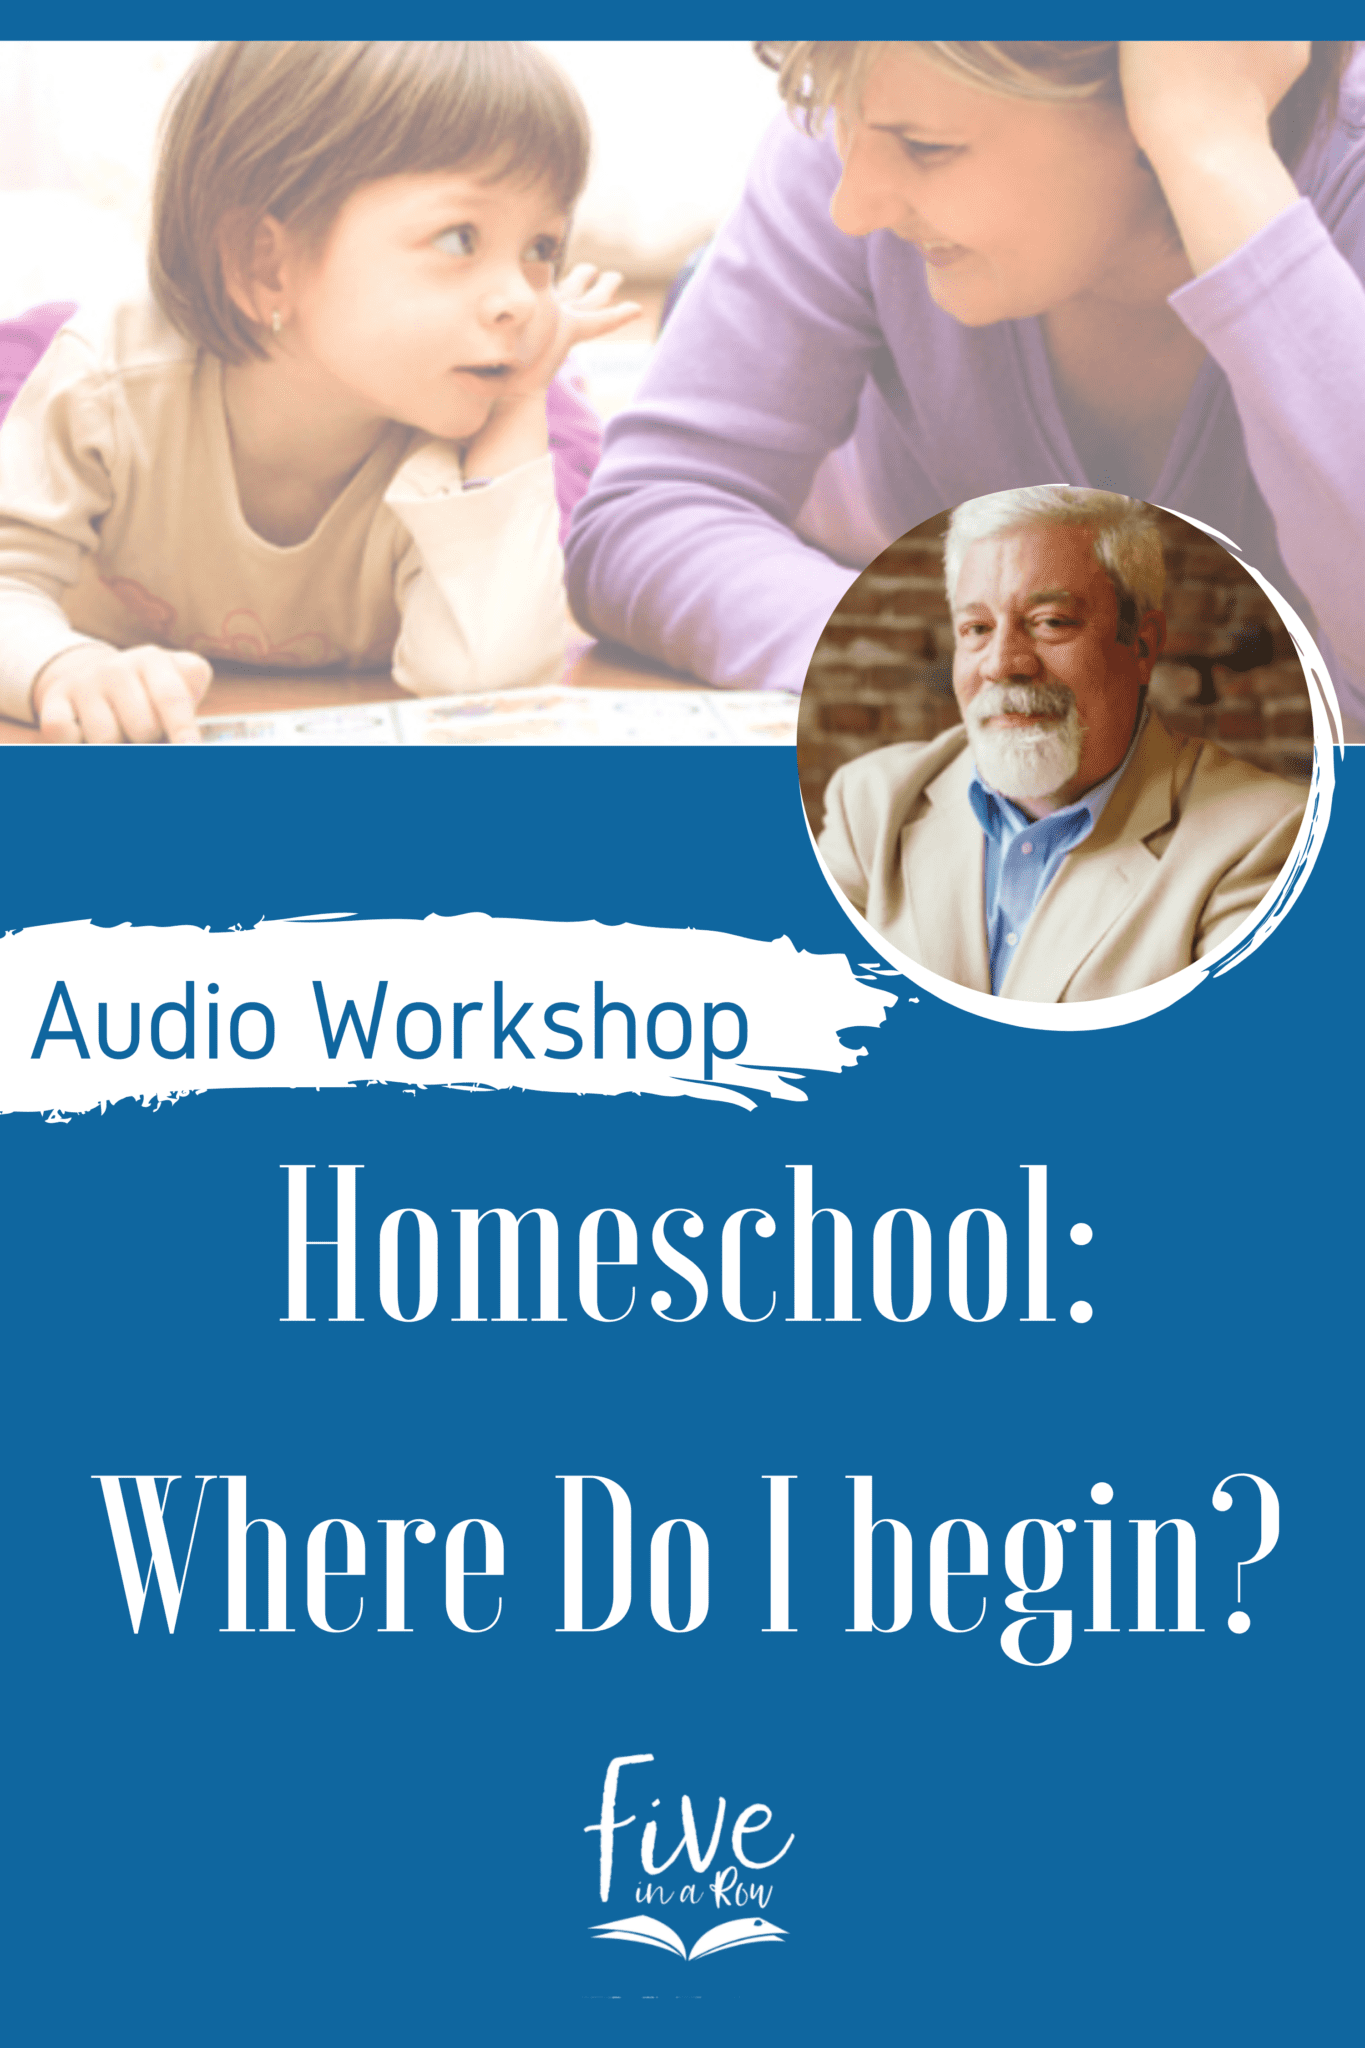 Homeschooling can seem overwhelming, but Steve will help you wrap your mind around the 'big picture' and make sense of this seemingly enormous undertaking.